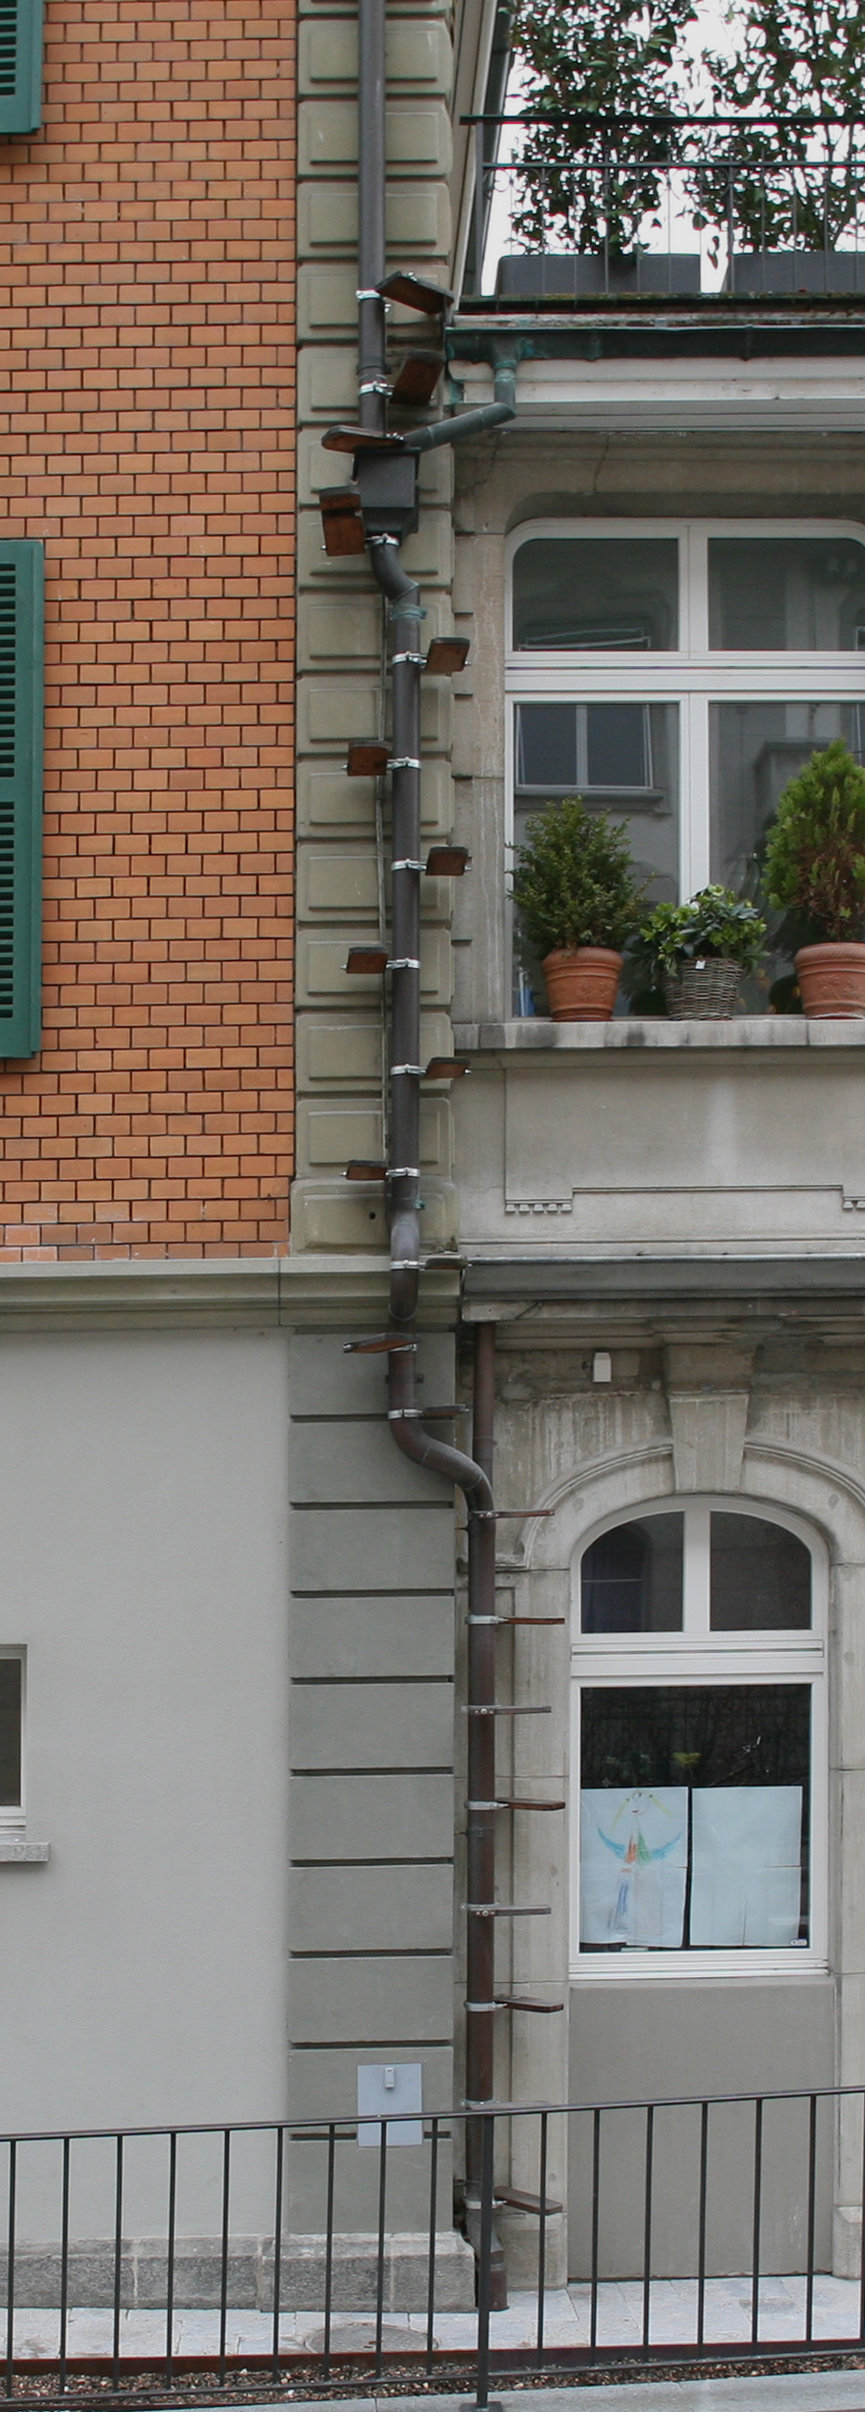 Pet Doors For People Who Live On Upper Floors This City Allows You To Install Diy Cat Ladders Core77